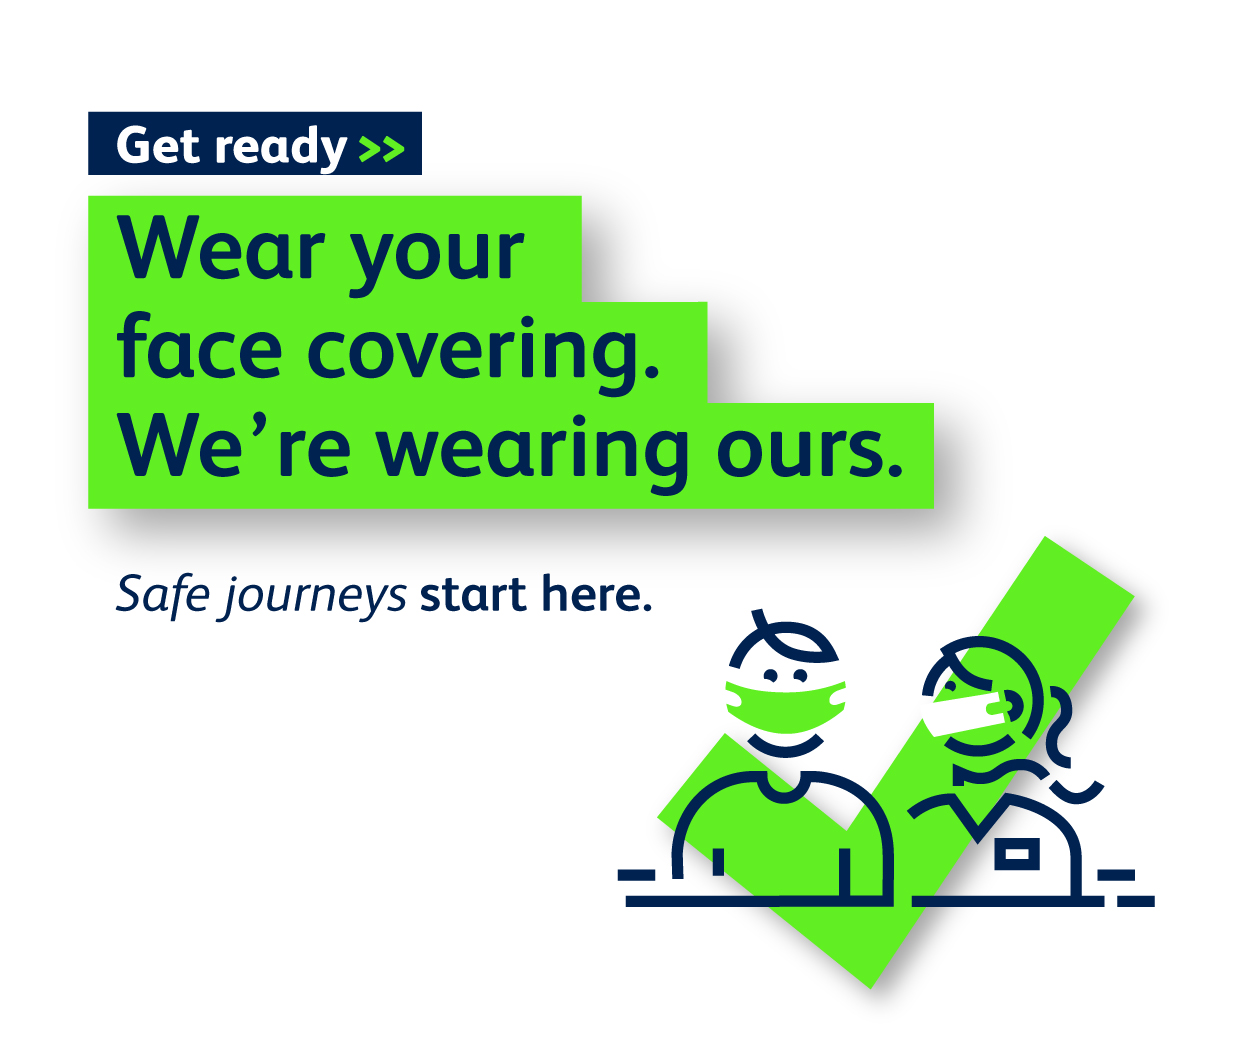 Wear your face covering at Bristol Airport